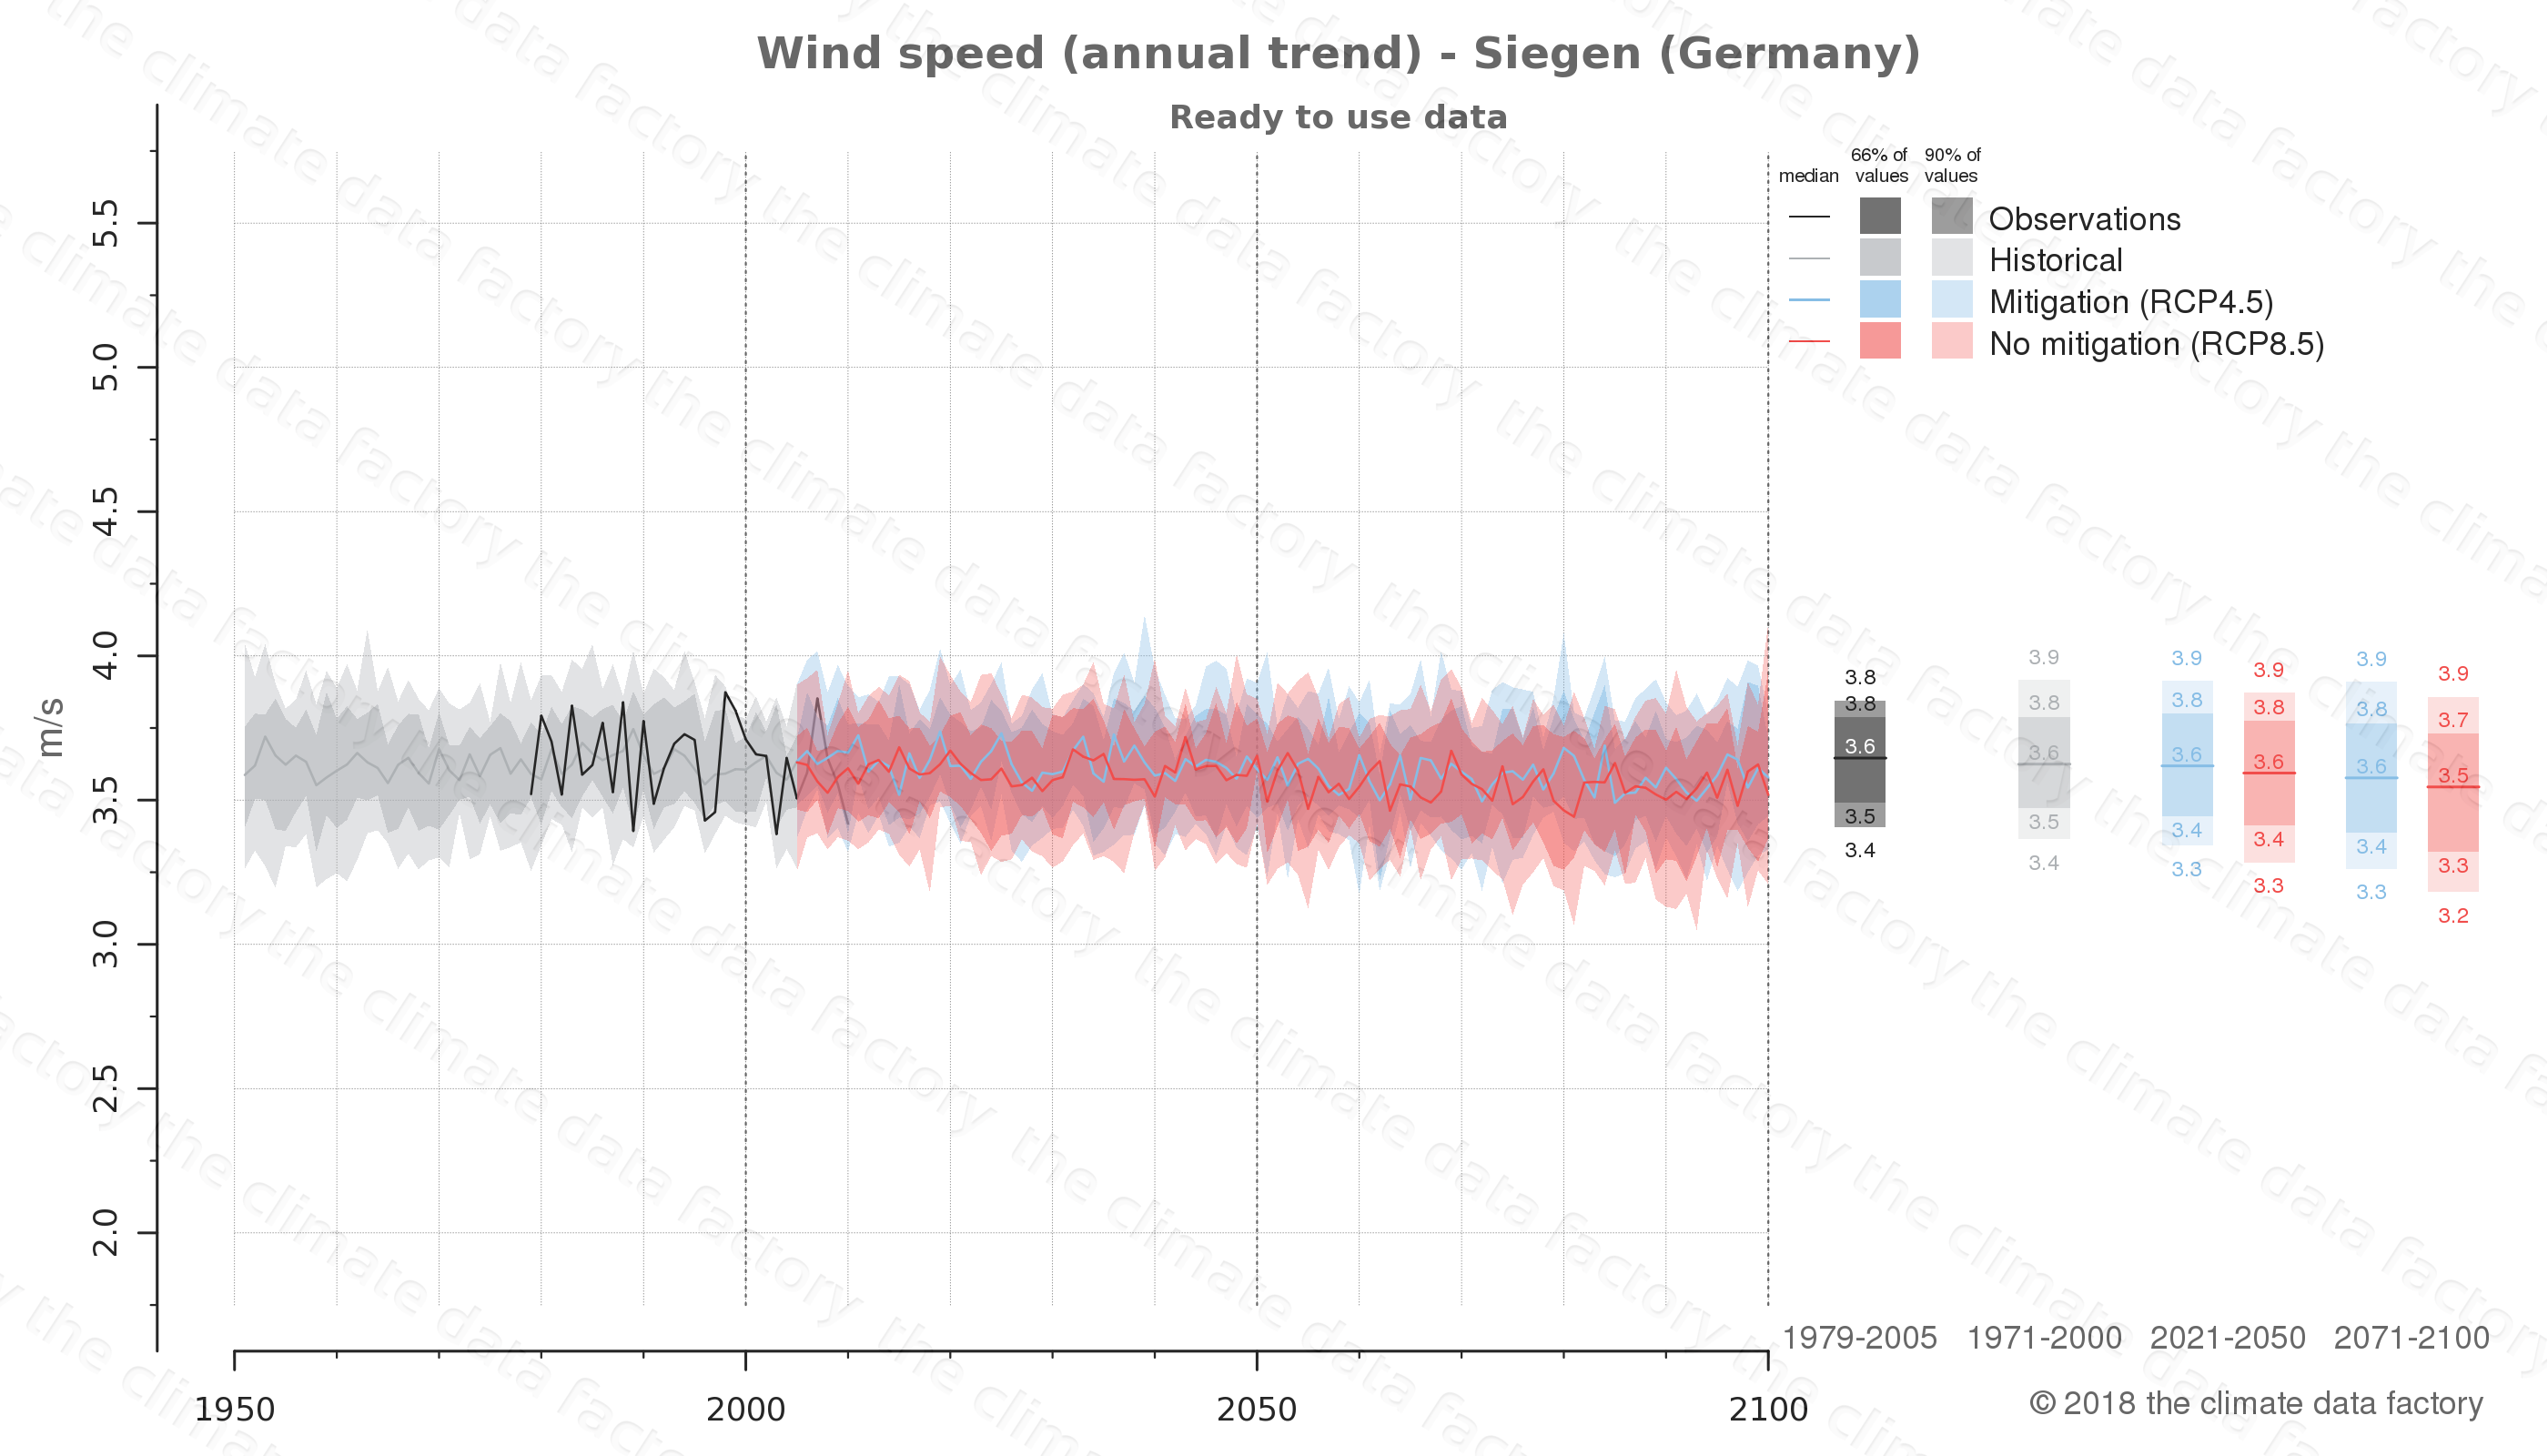 climate change data policy adaptation climate graph city data wind-speed siegen germany